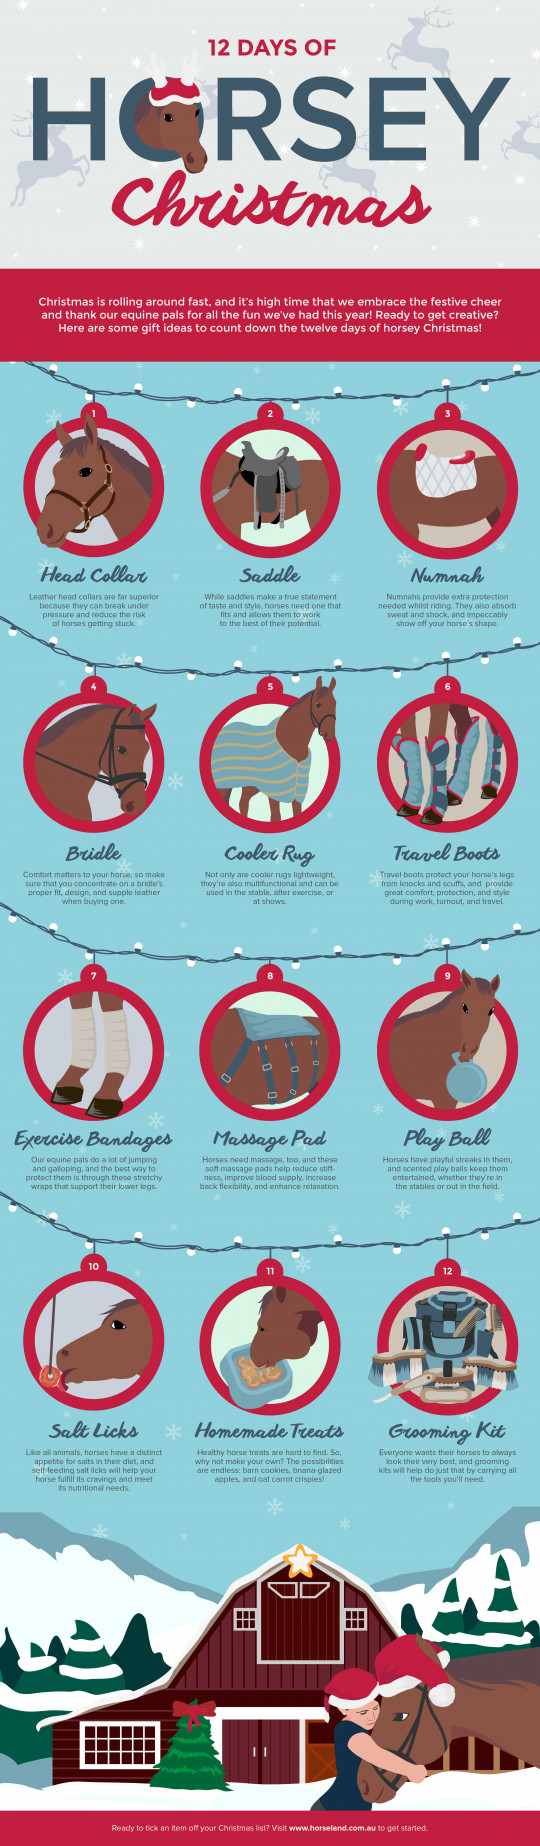 12 Days of Horsey Christmas